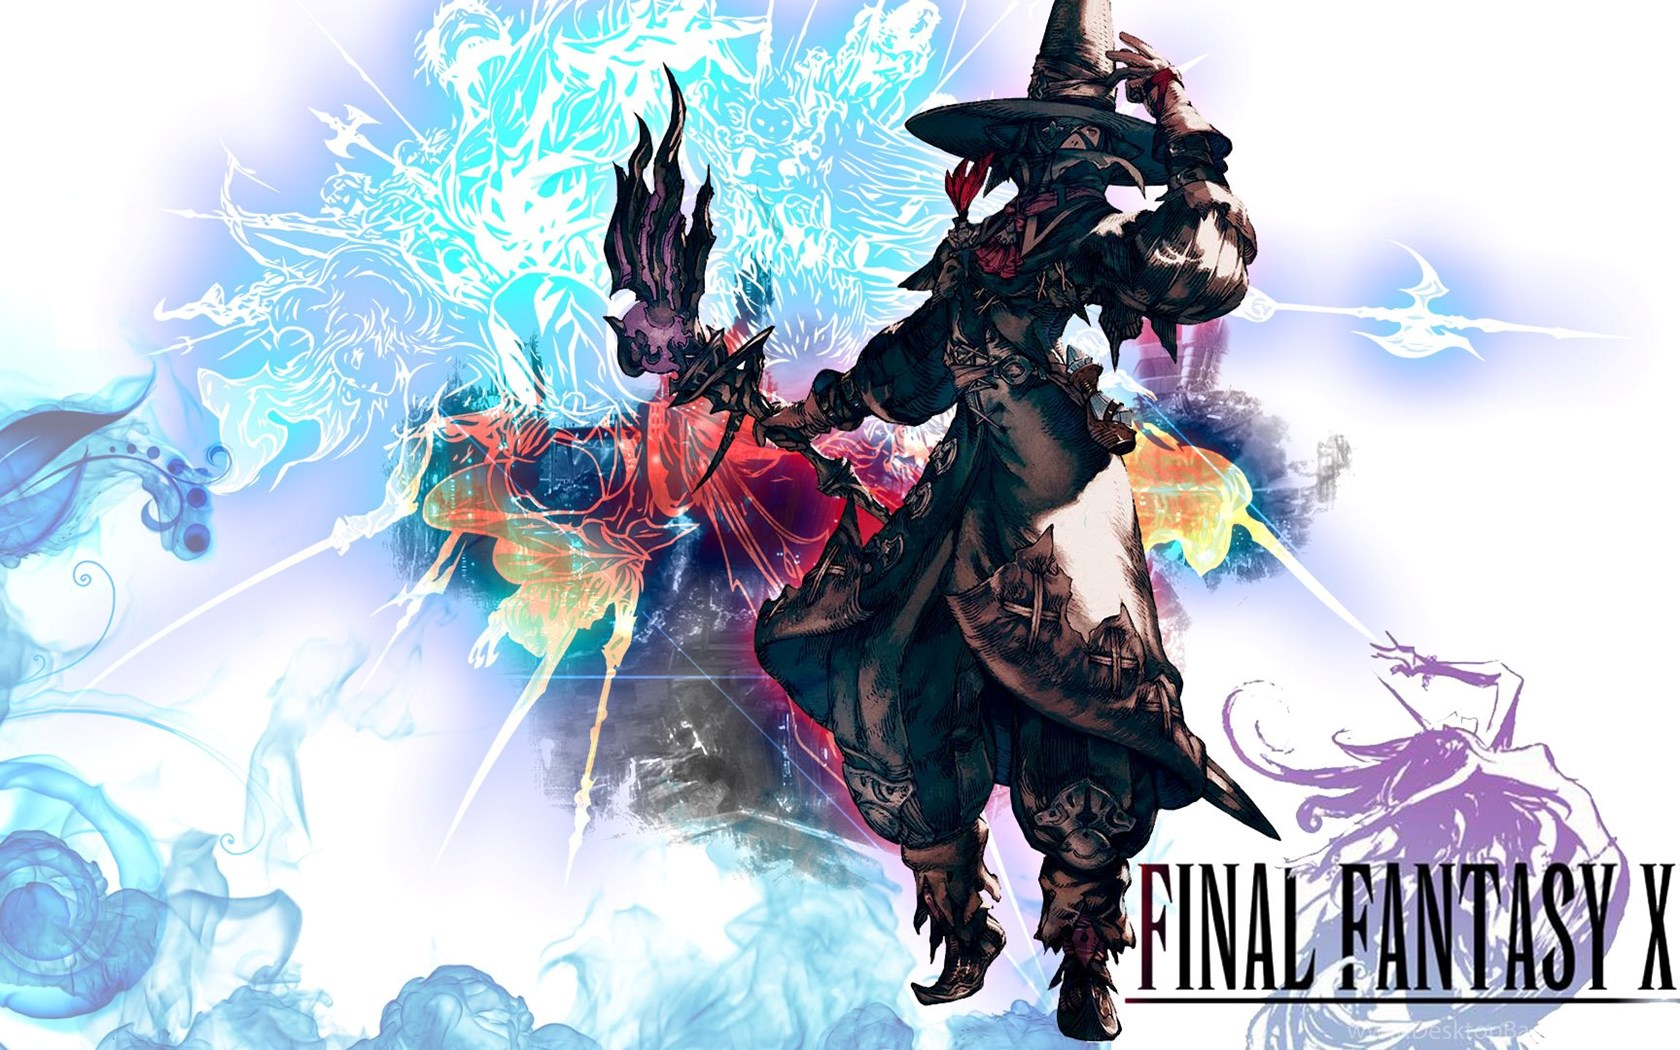 Final Fantasy Xiv Wallpapers By Majinkhan On Deviantart Desktop